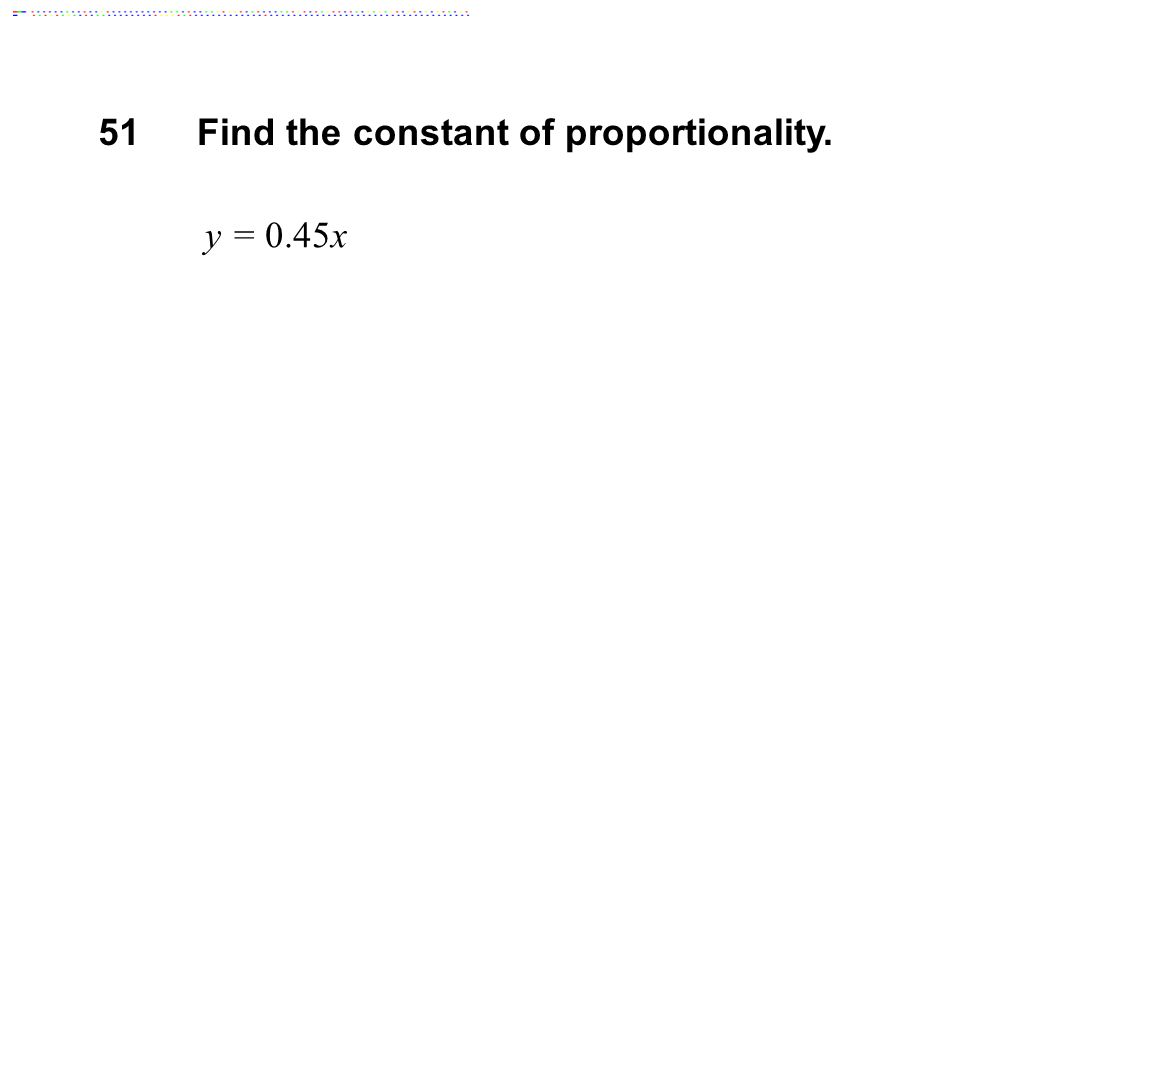 Find the constant of proportionality.